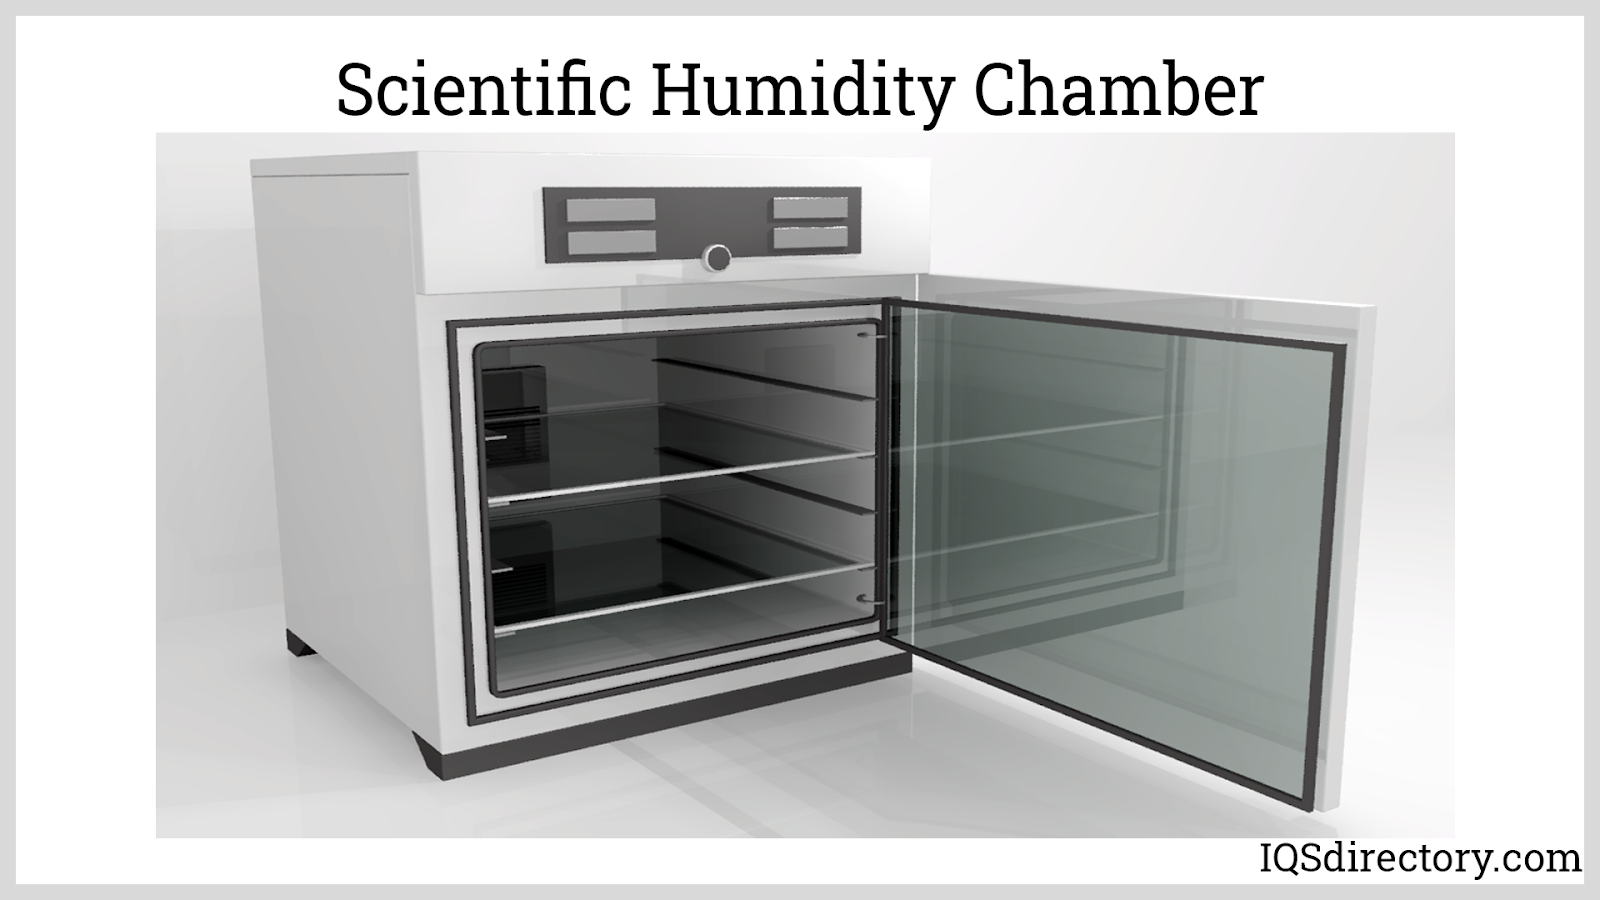 Scientific Humidity Chamber